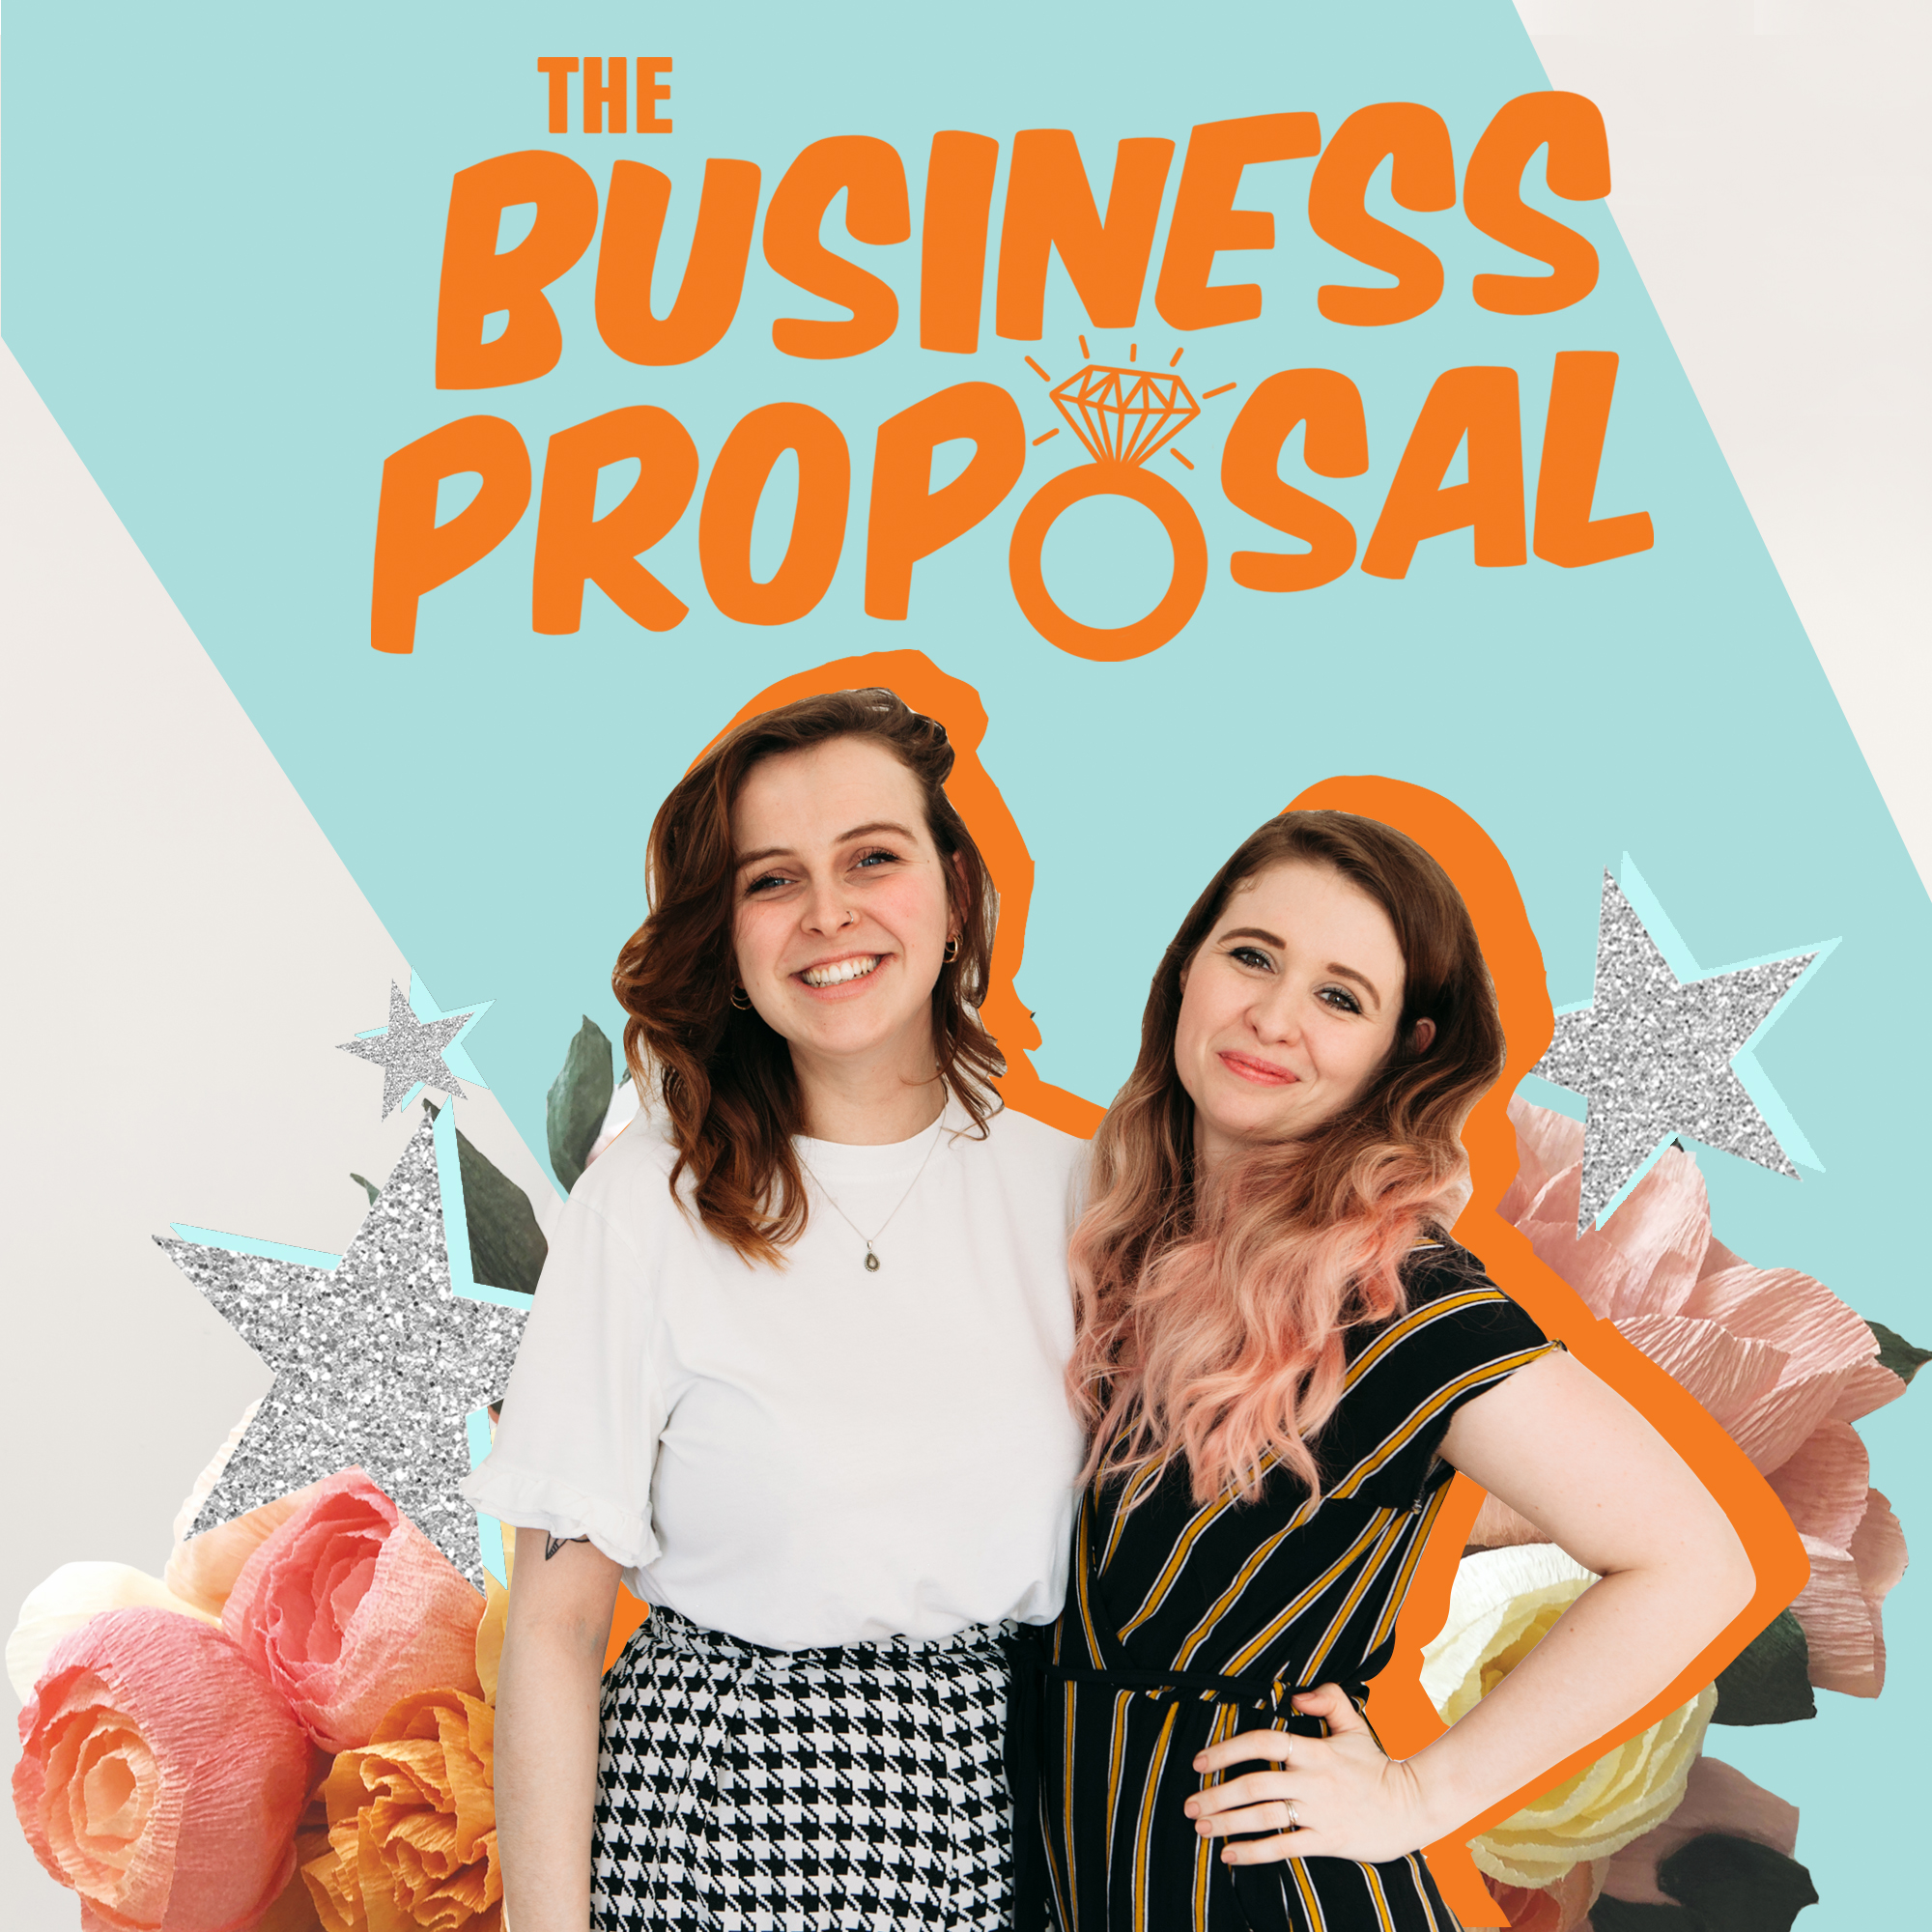 The_Business_Proposal_Podcast.jpg